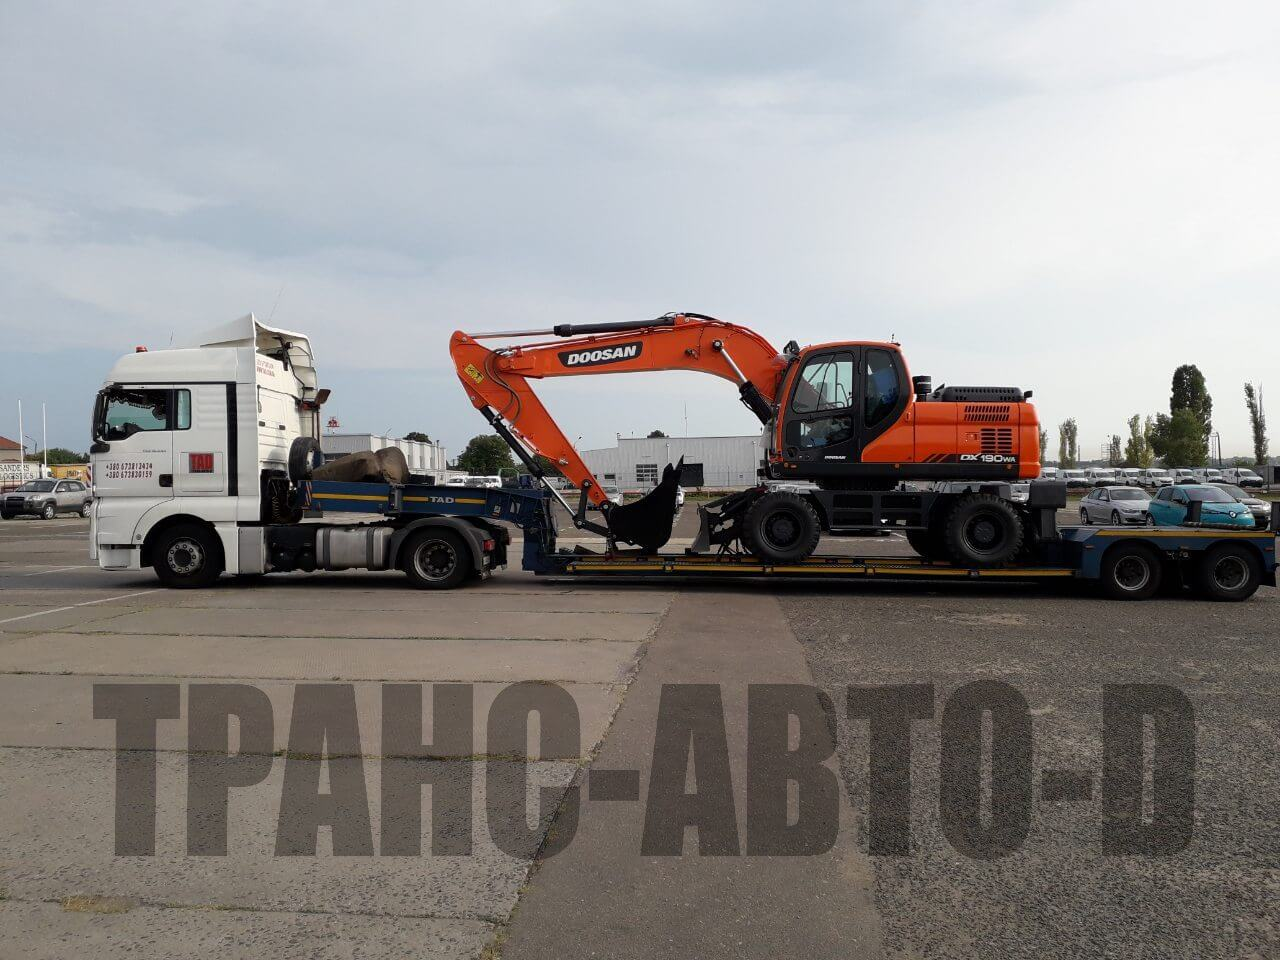 Transportation of the Doosan excavator from Europe to Ukraine